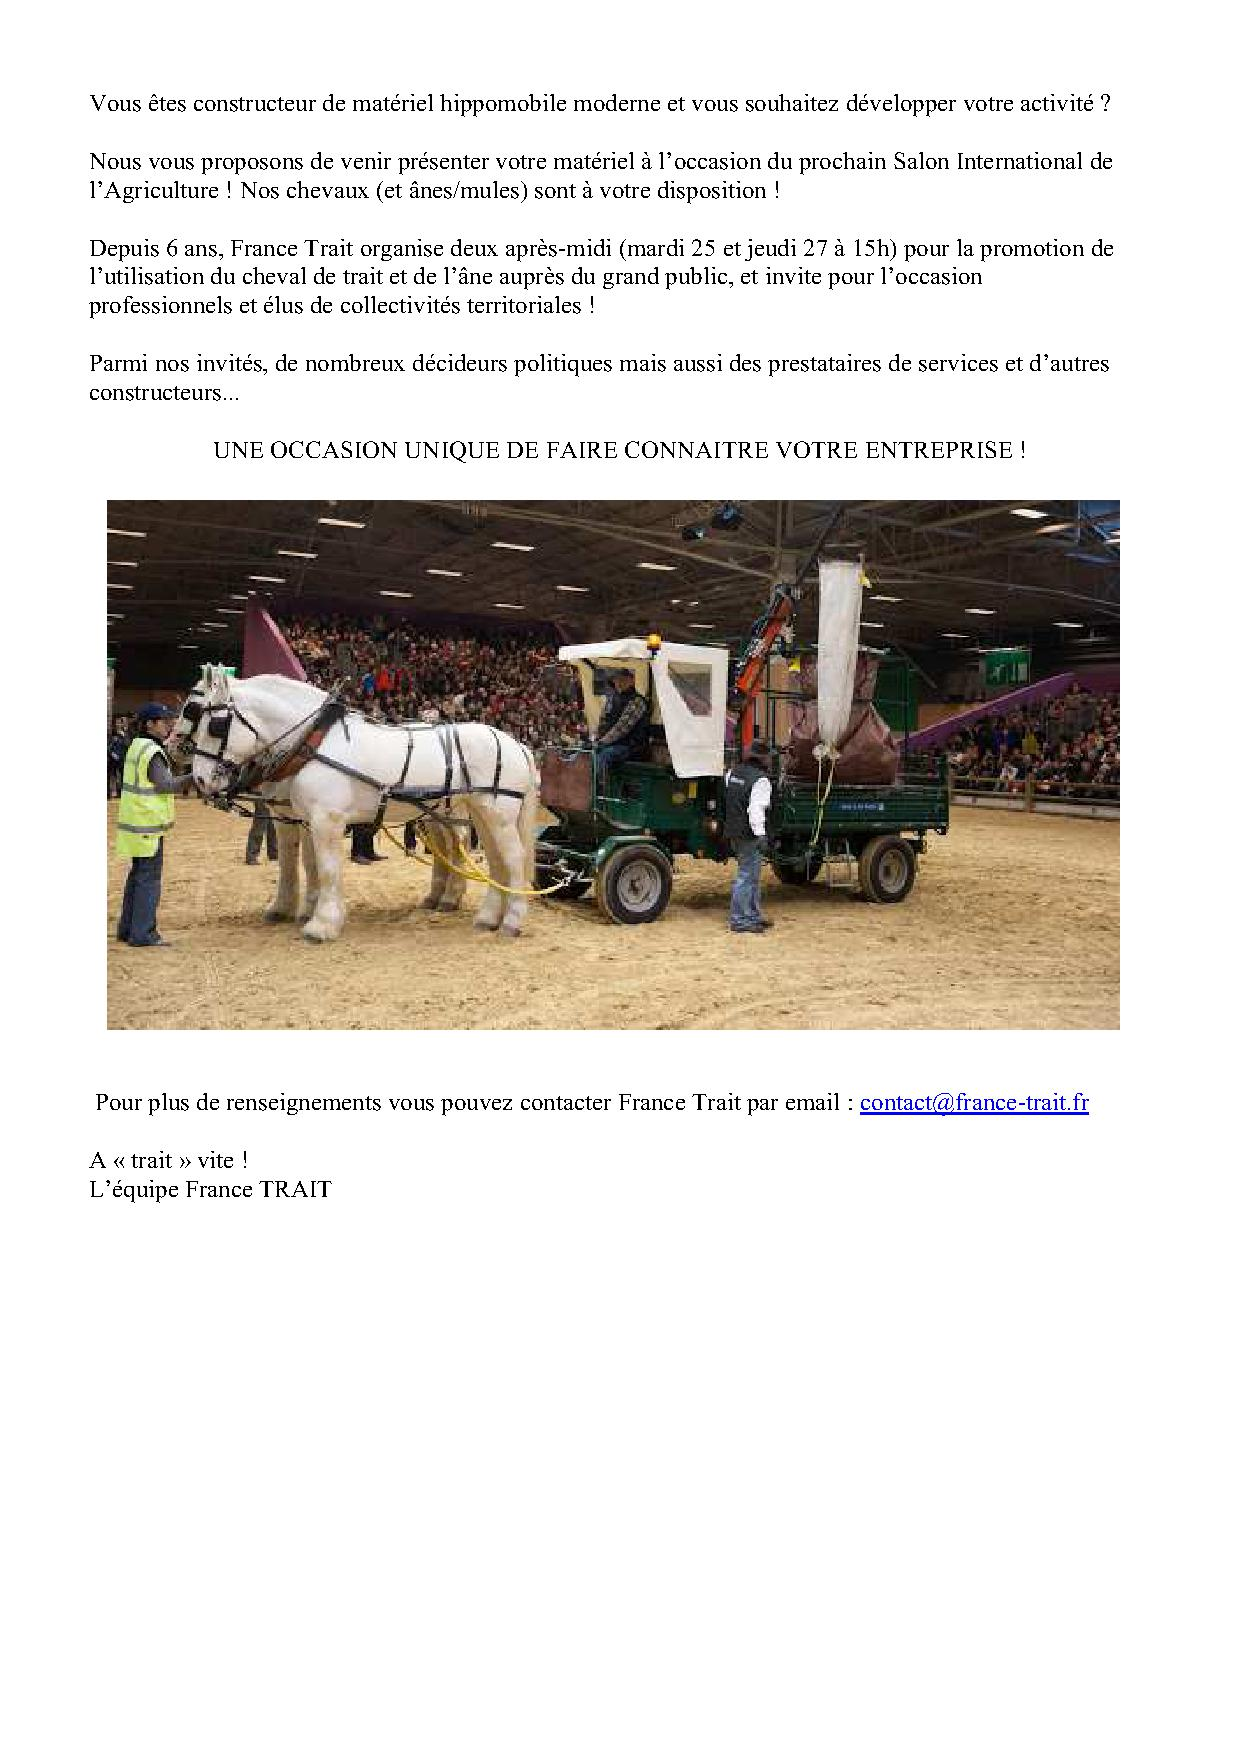 France trait salon international de l 39 agriculture - Midi en france salon de l agriculture ...